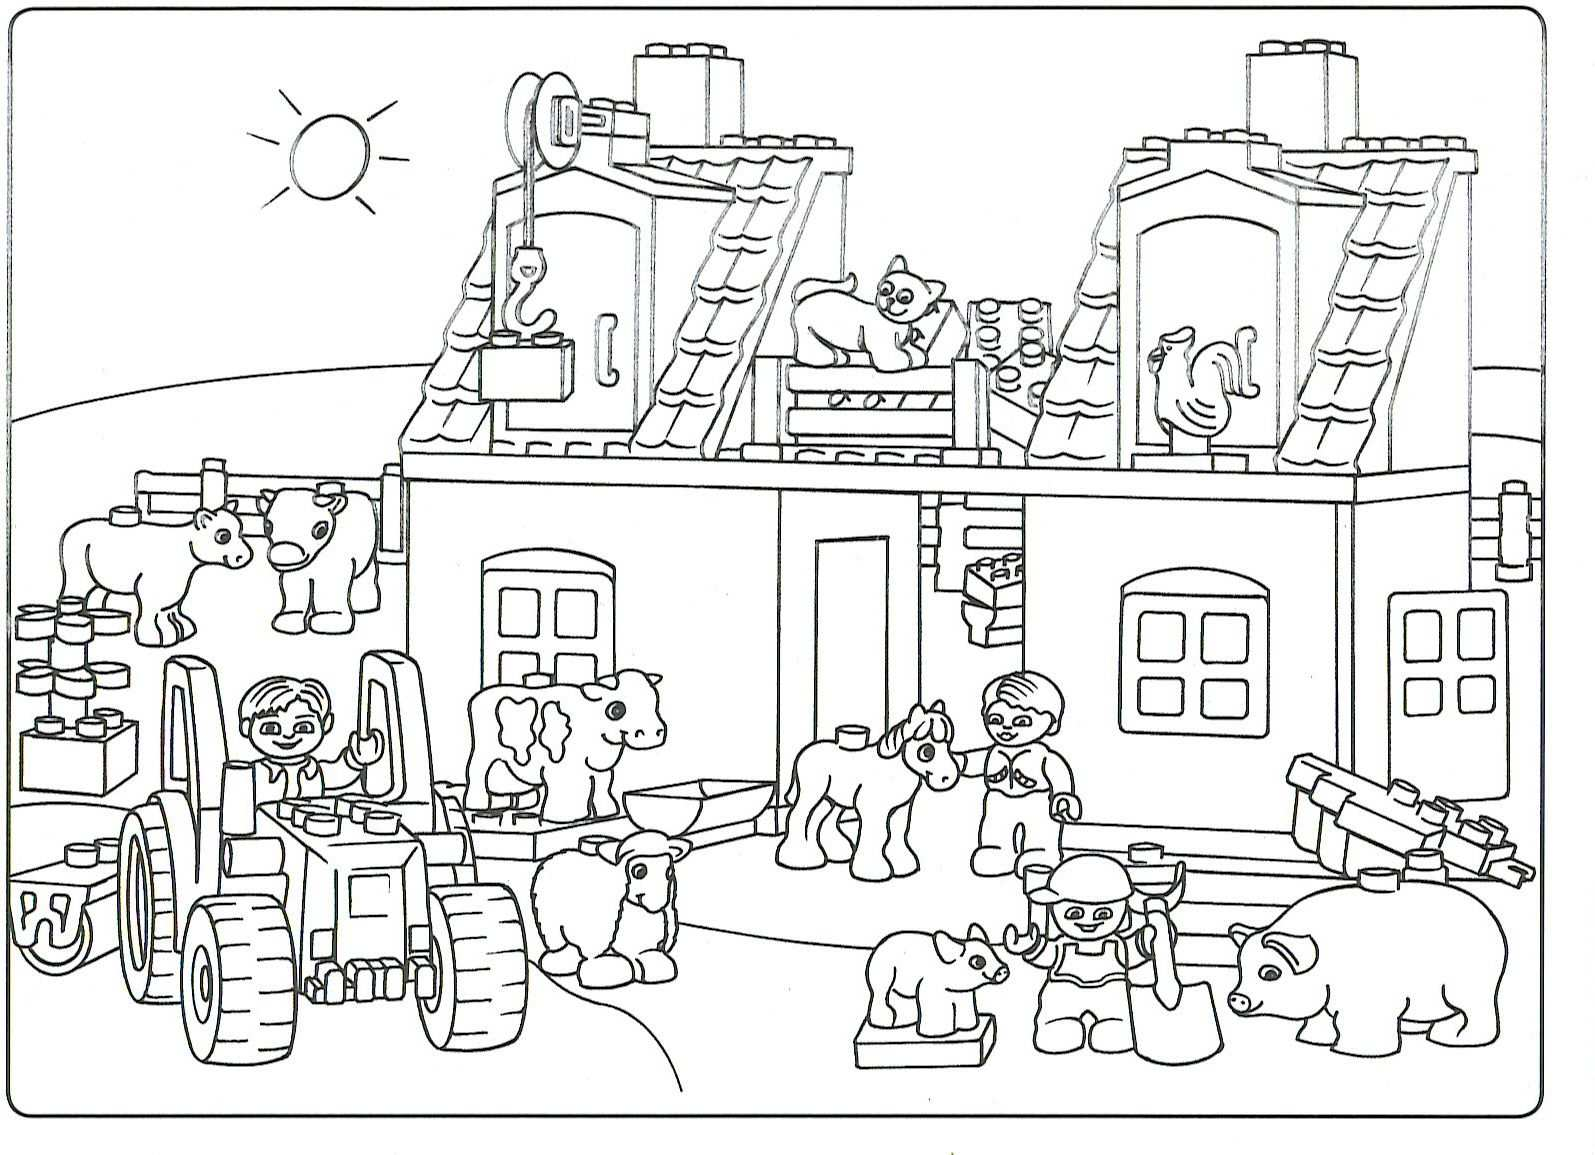 Pin Van Melinda Smith Op Lego Coloring Pages In 2020 Met